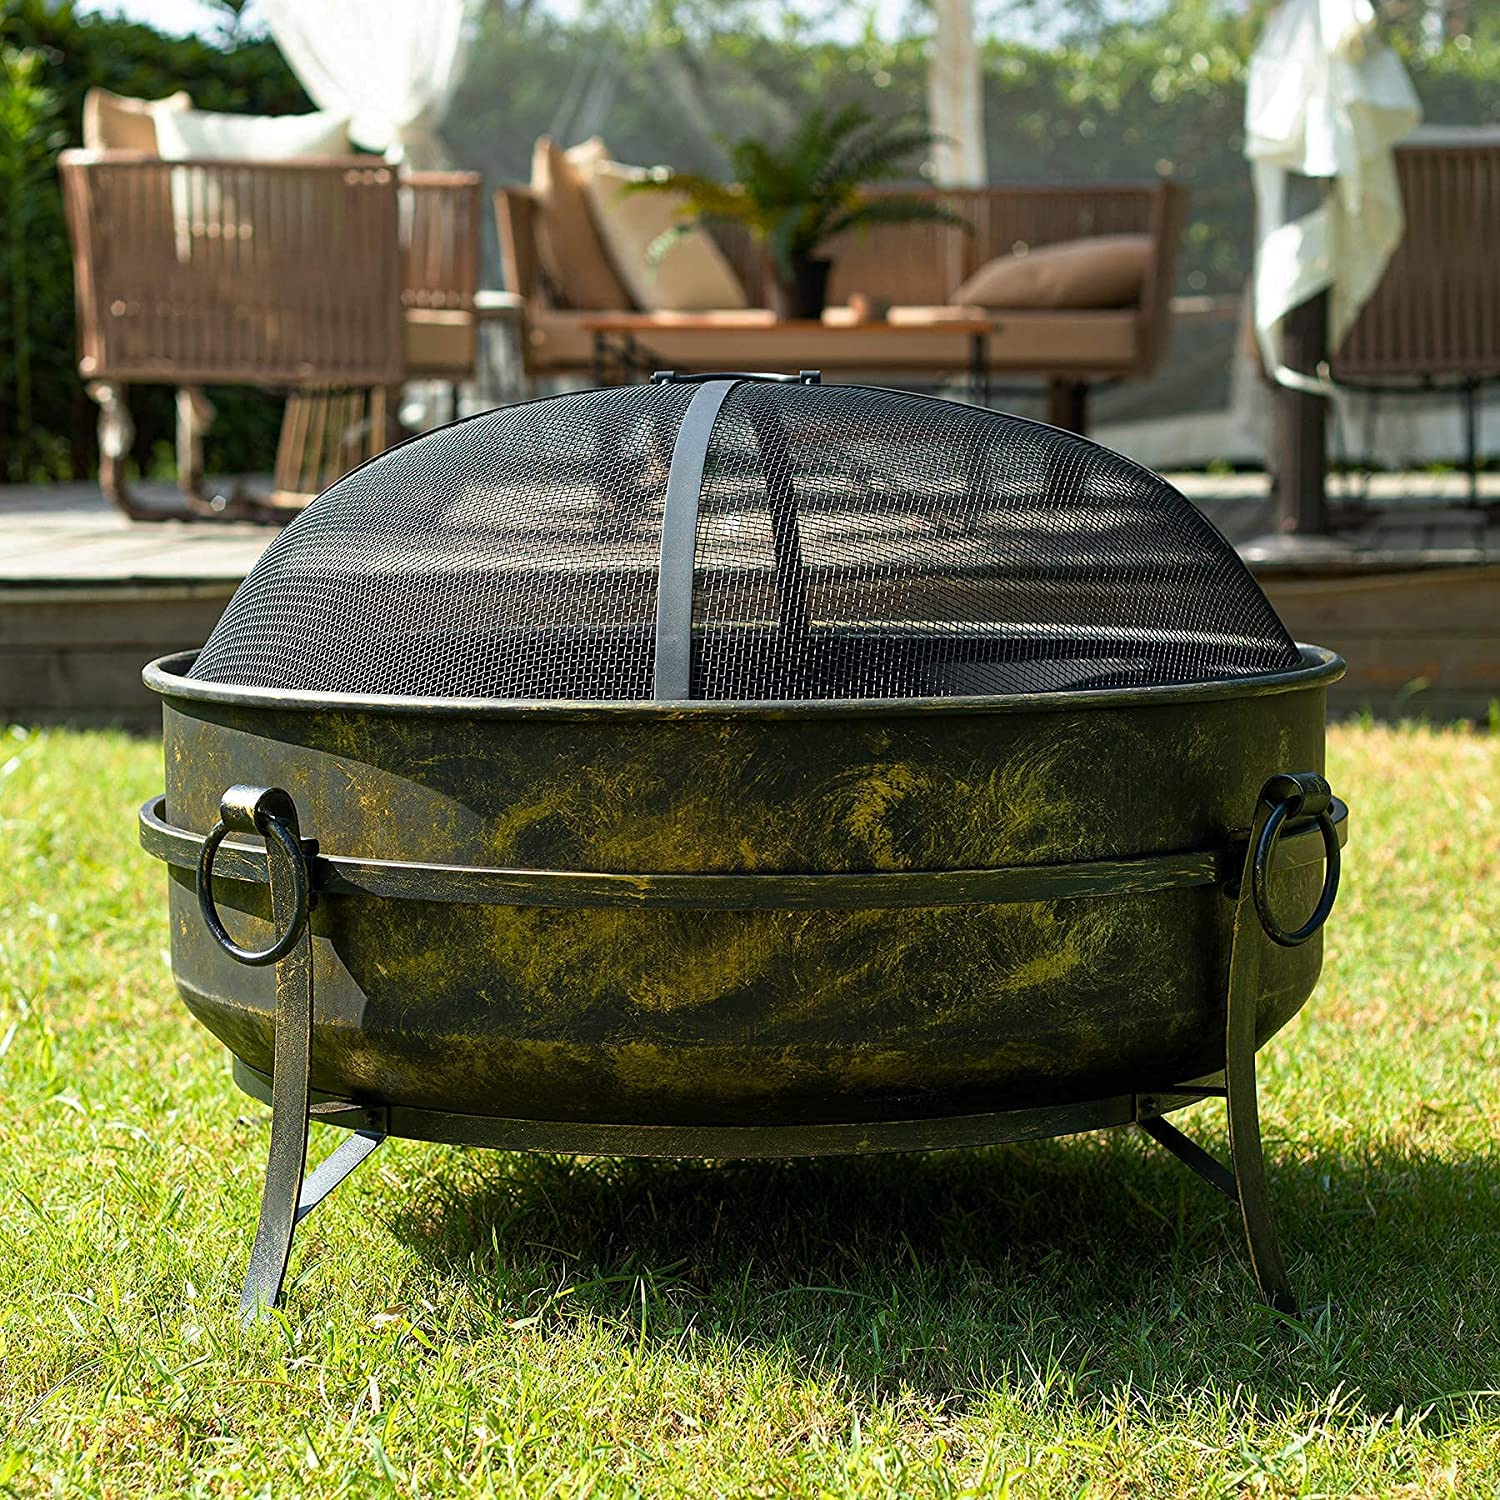 Buy CO Z 10 Inch Outdoor Fire Pit, Large Round Wood Burning Fire ...